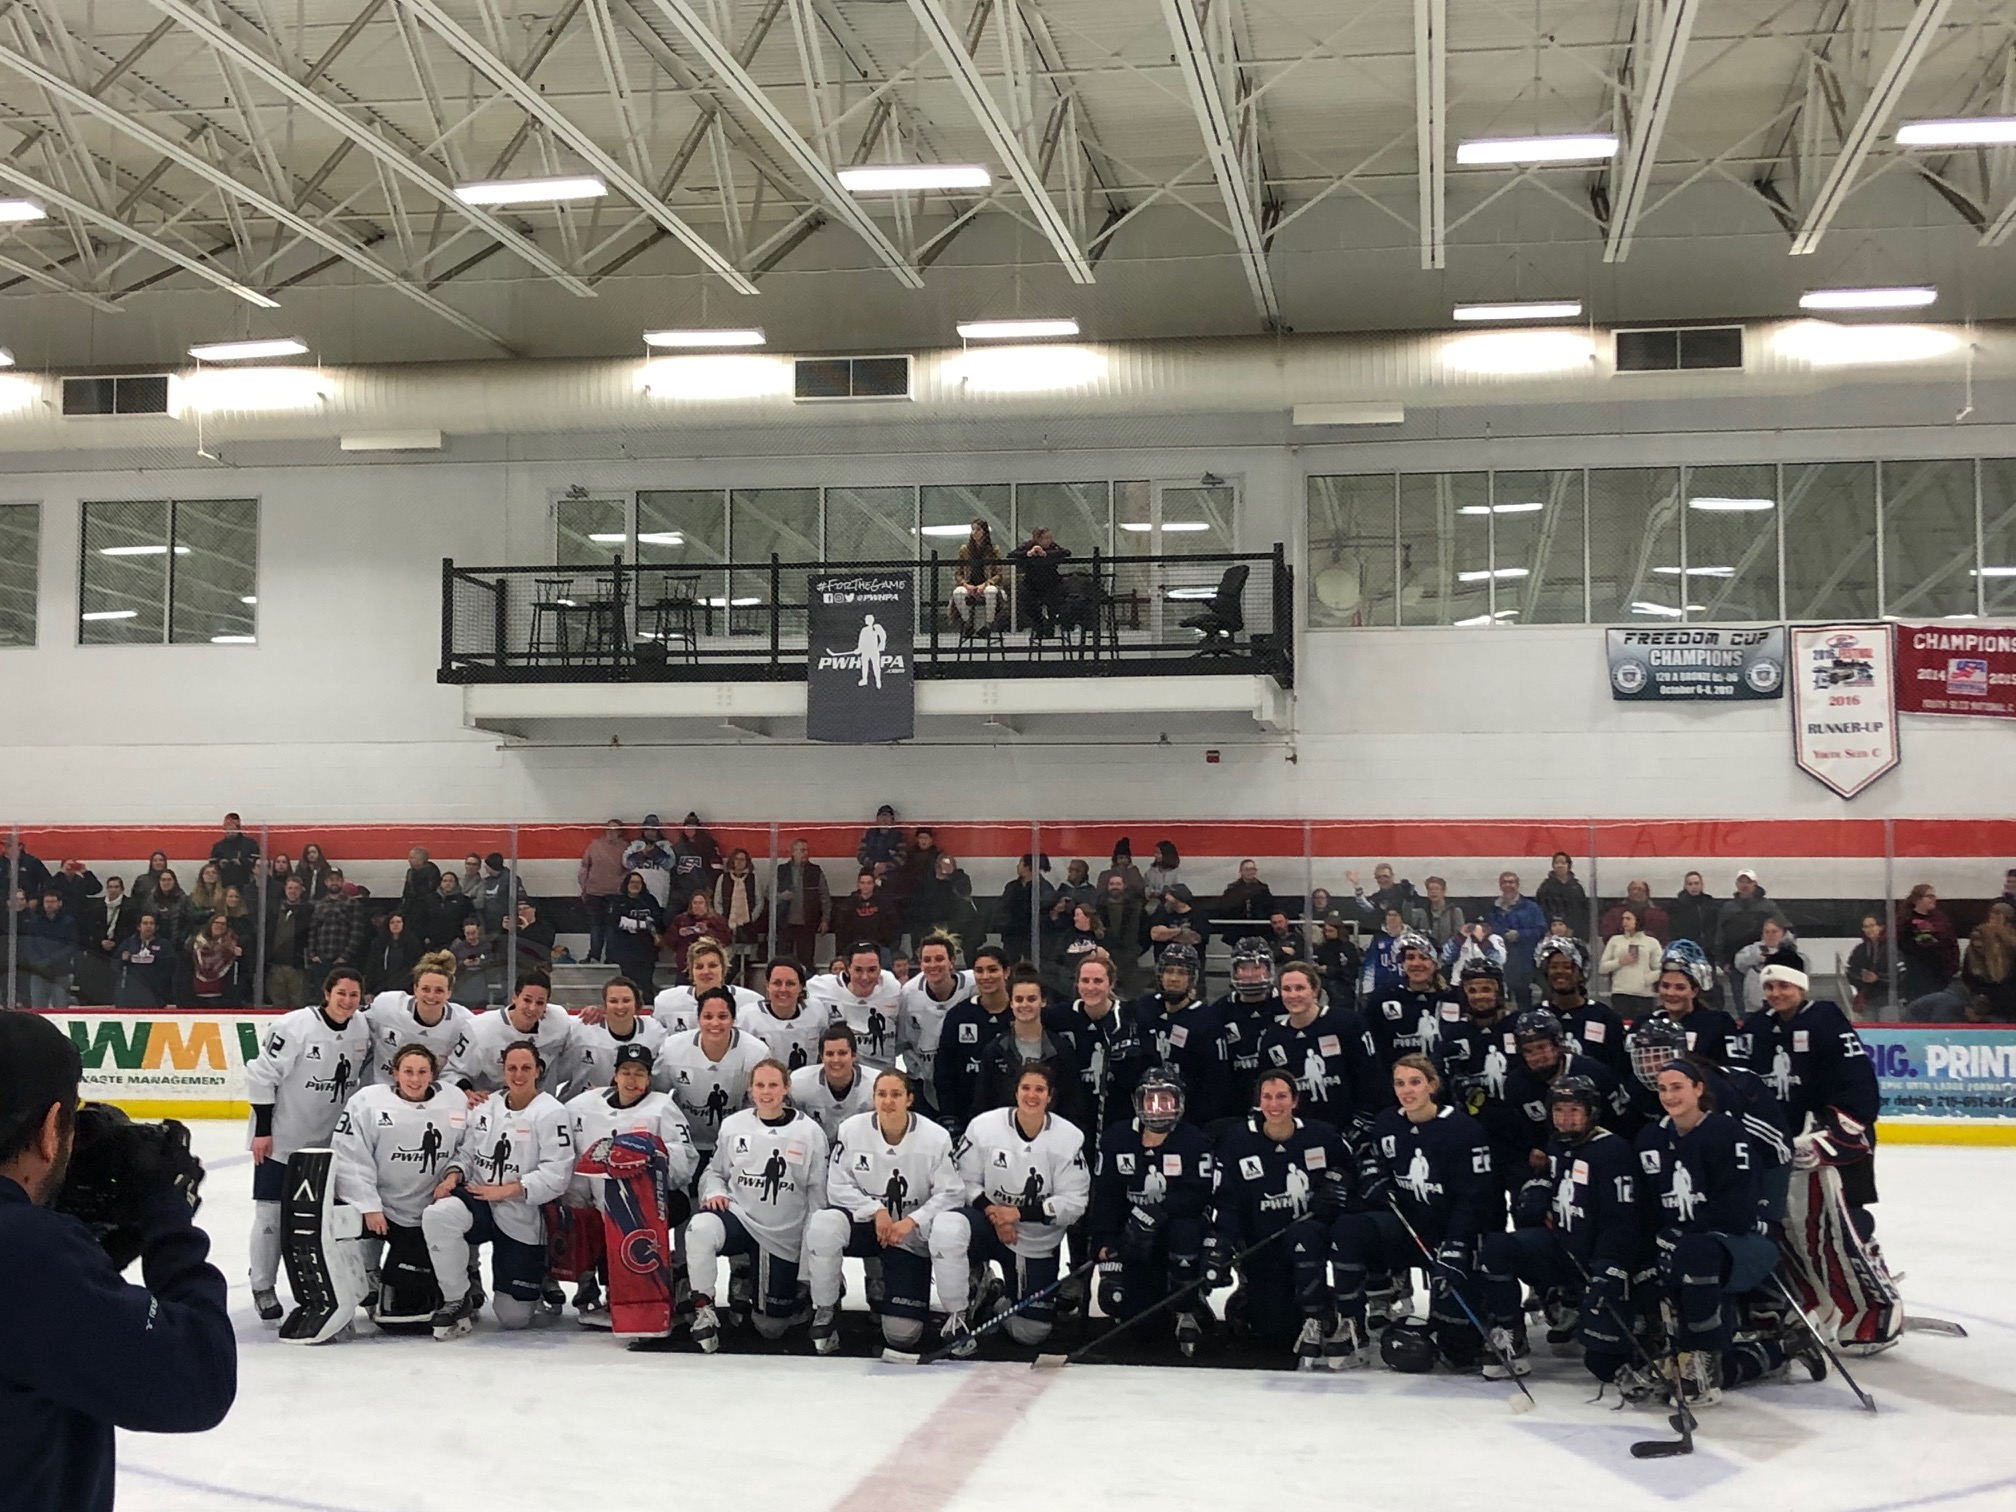 BIRINGER: CROWD ATTENDANCE SHOWS THERE IS A DEMAND FOR WOMEN'S HOCKEY